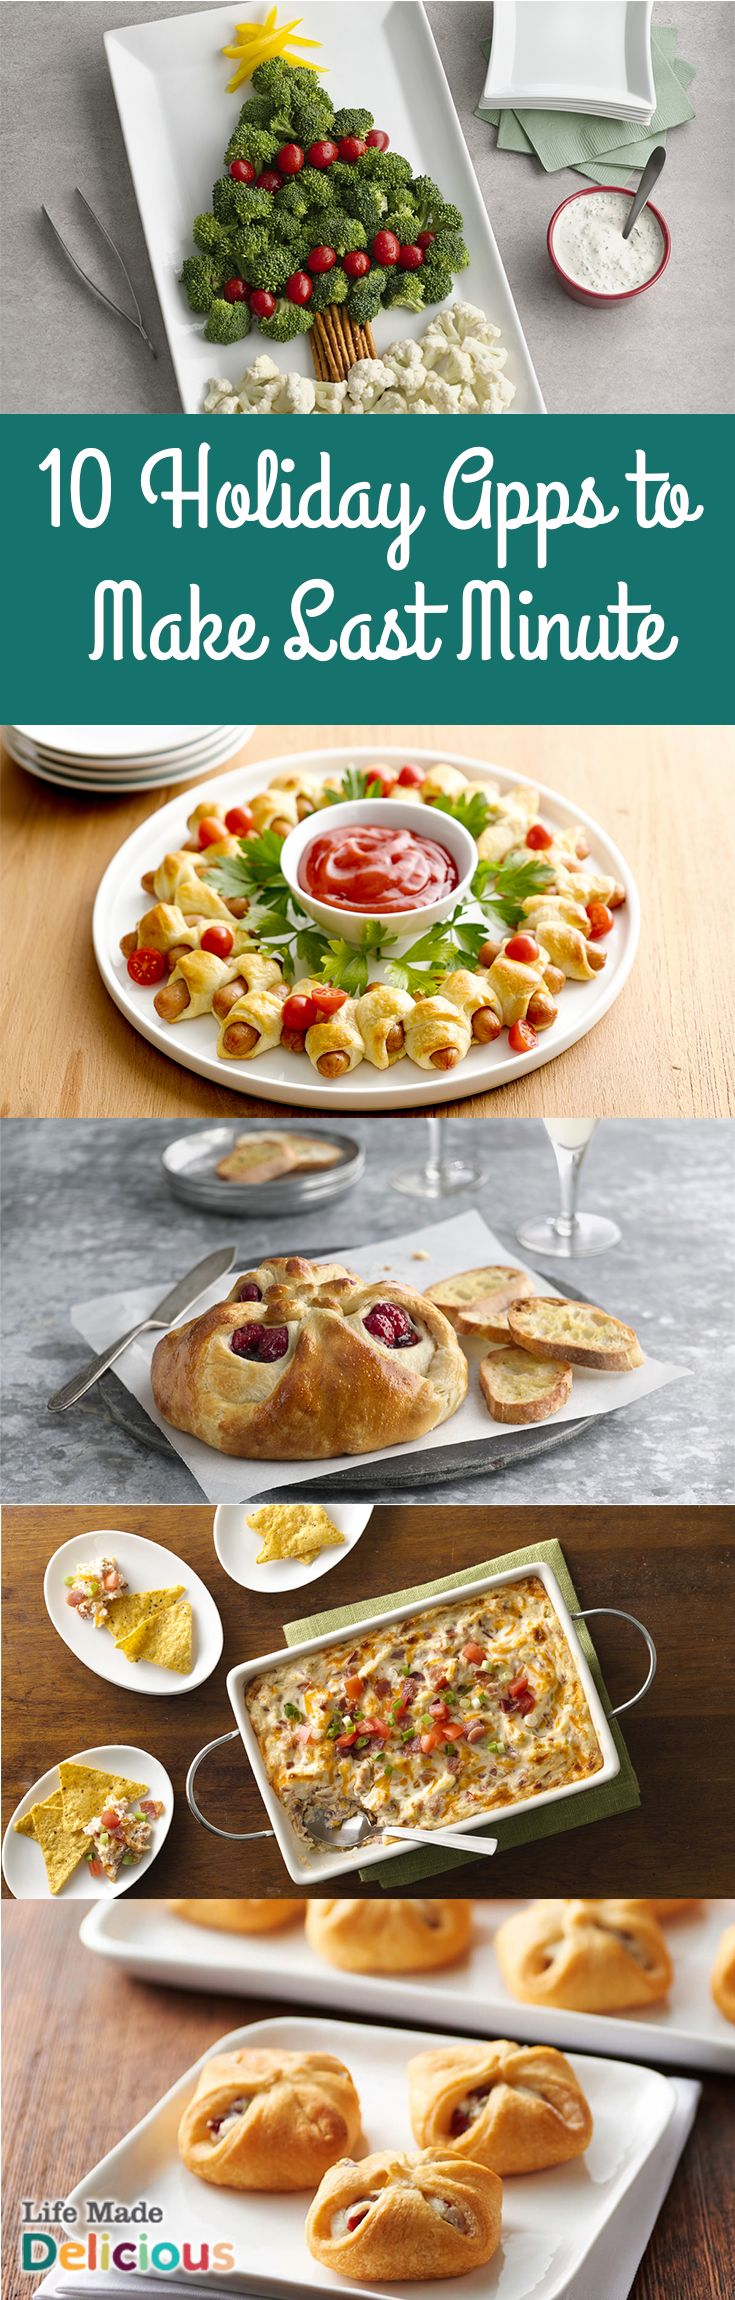 10 Holiday Party Appetizers to Make Last Minute